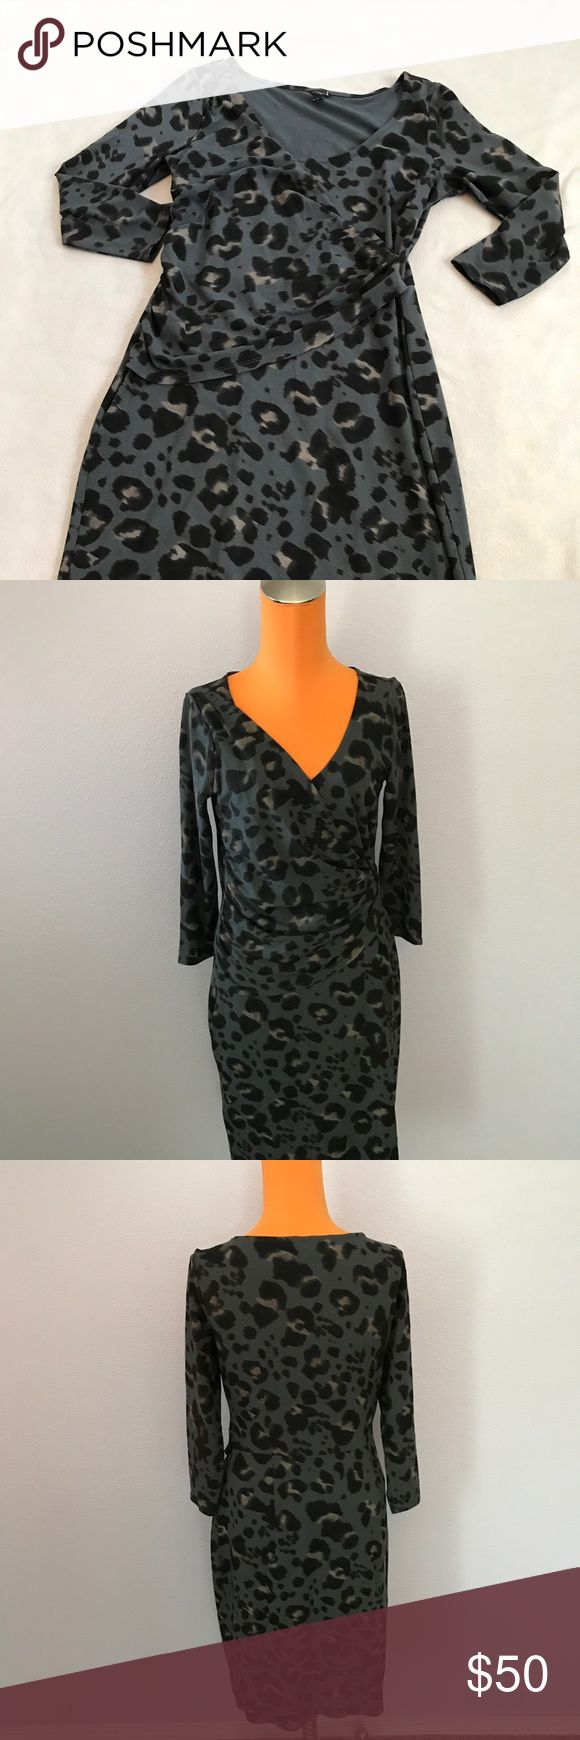 """Ann Taylor Gray Animal Ruched Side Sleeved Dress 37.5"""" length 18"""" armpit to armpit. Gray animal print leopard dress. Stretch style. 3/4 Sleeve. Ruched Side for style and flattering look. Excellent condition. Bundle 2+ items for a discount Ann Taylor Dresses Long Sleeve"""